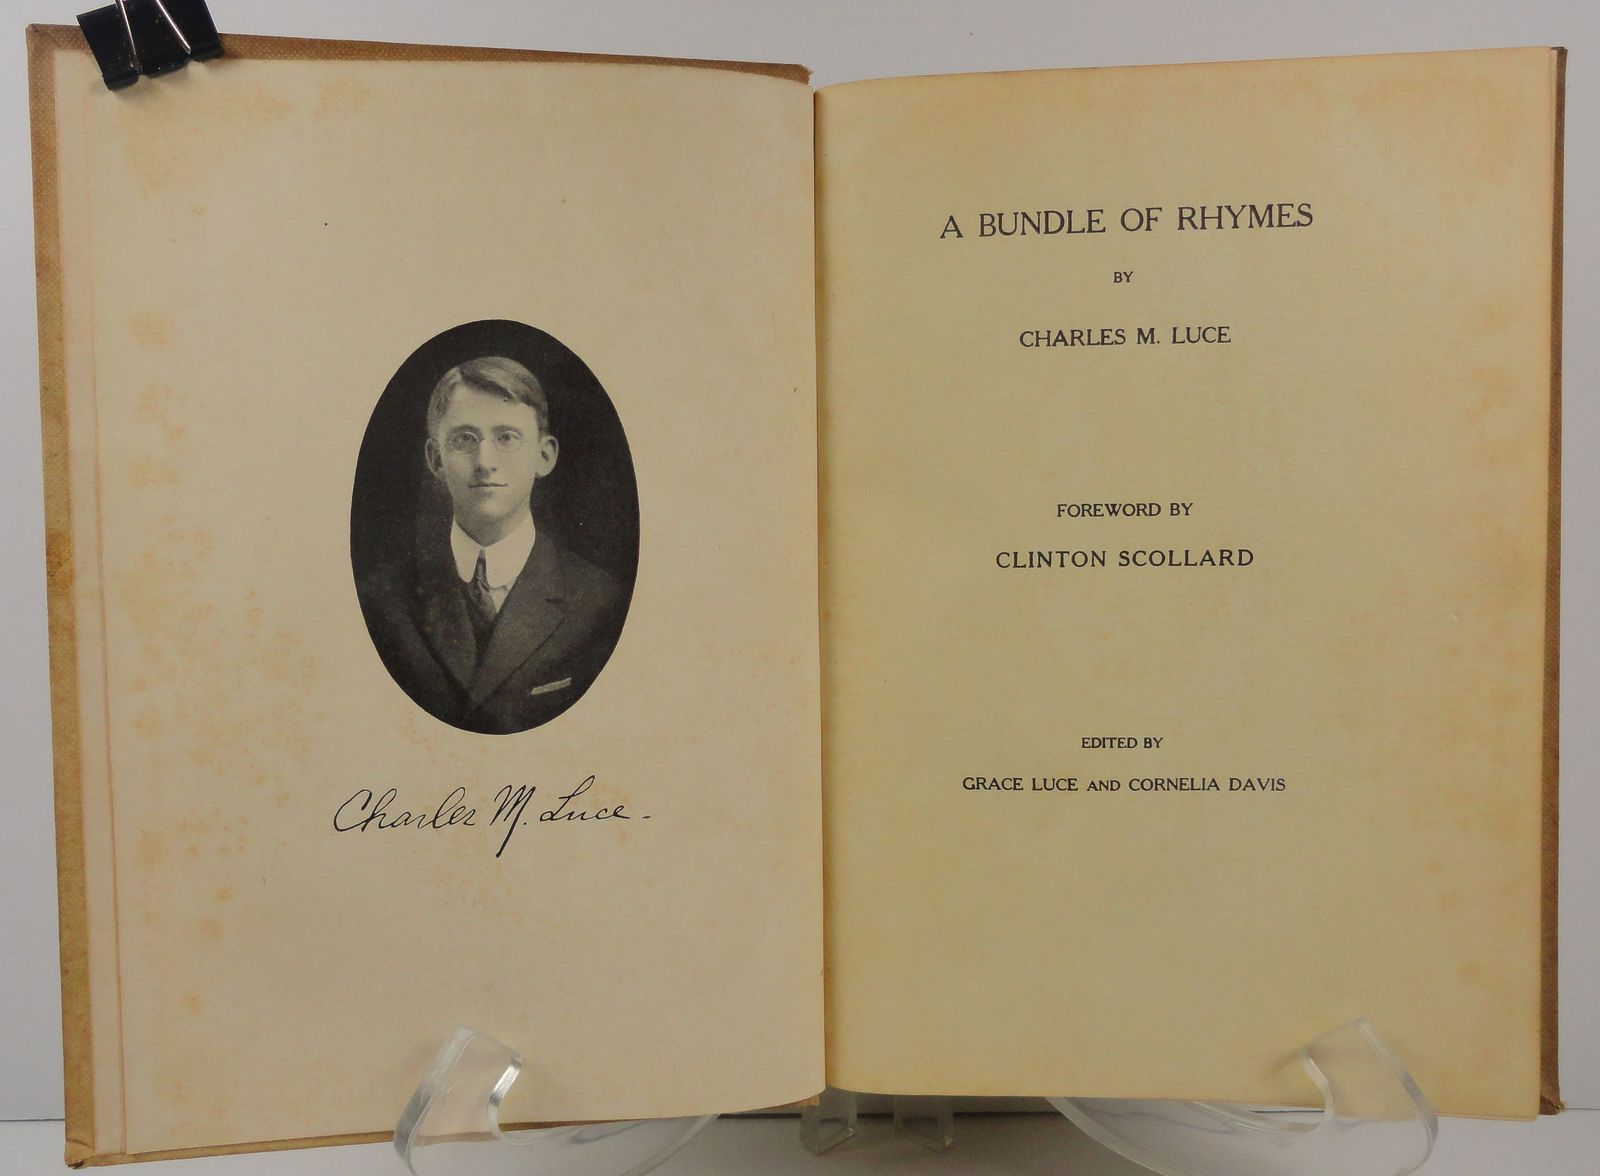 A Bundle of Rhymes by Charles M. Luce 1914